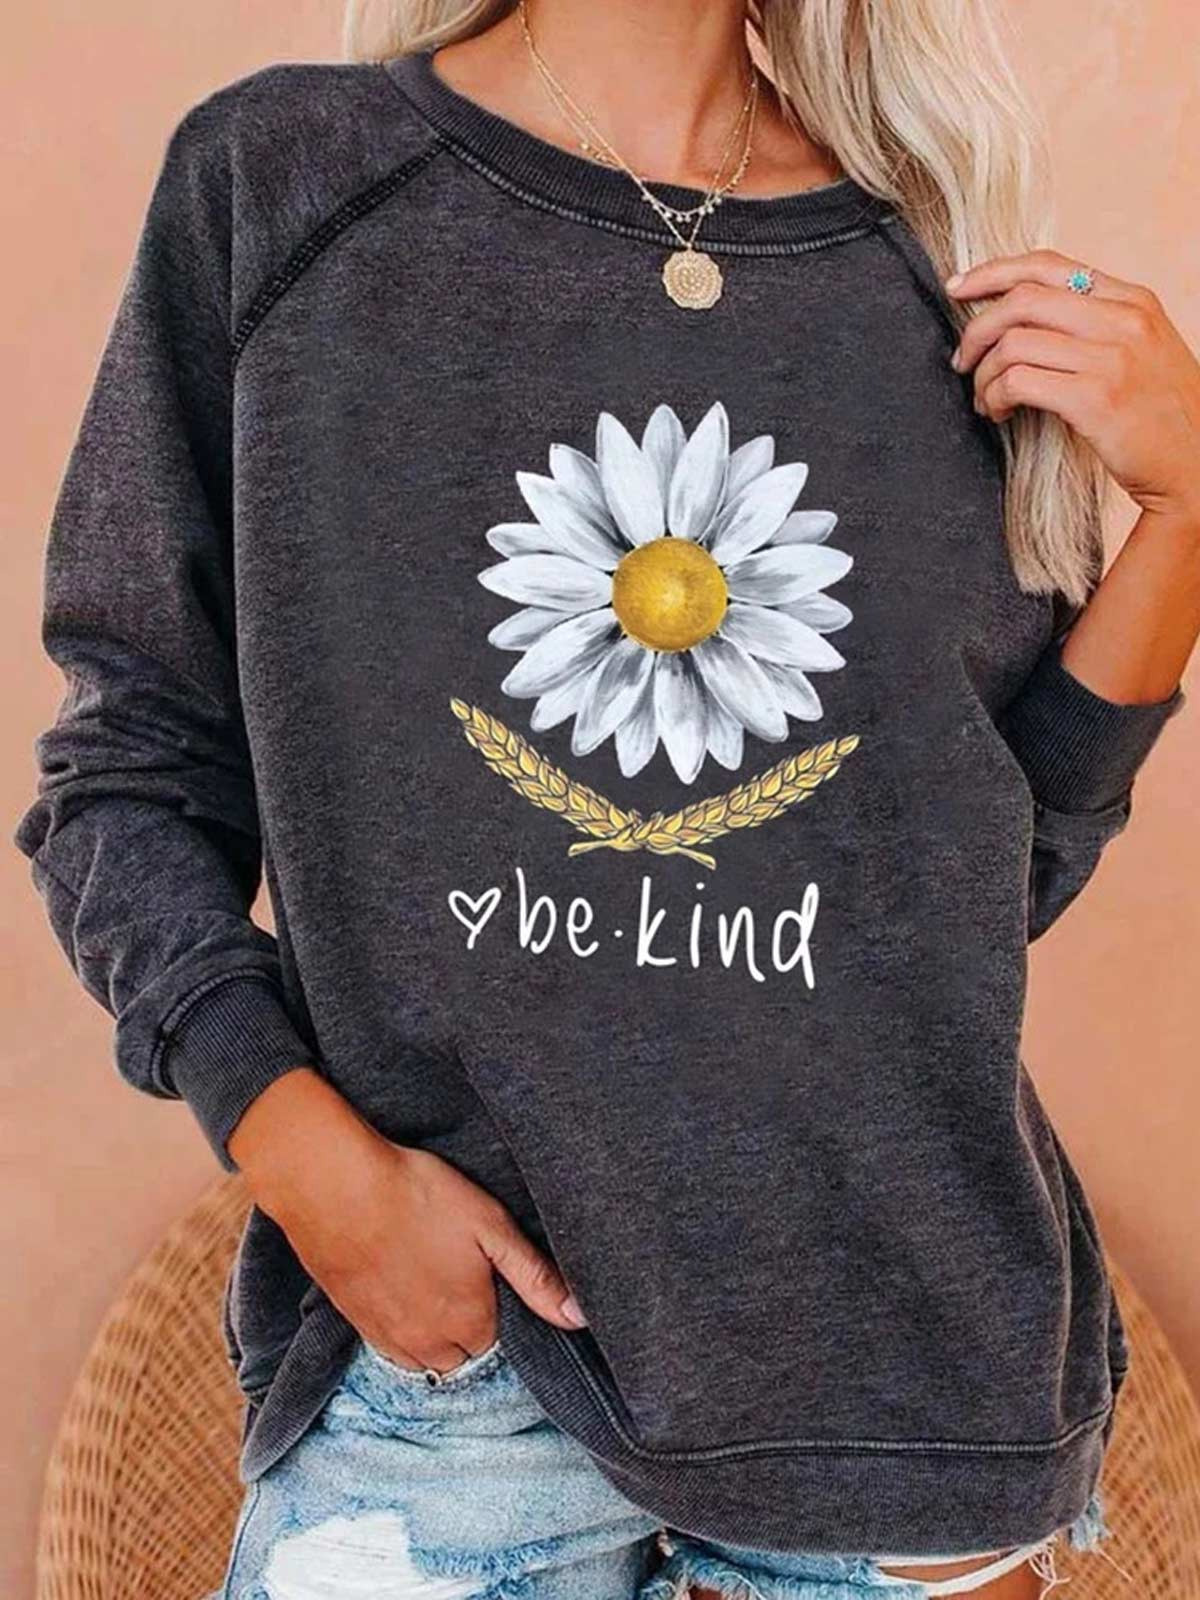 2021 Be Kind Sweatshirt